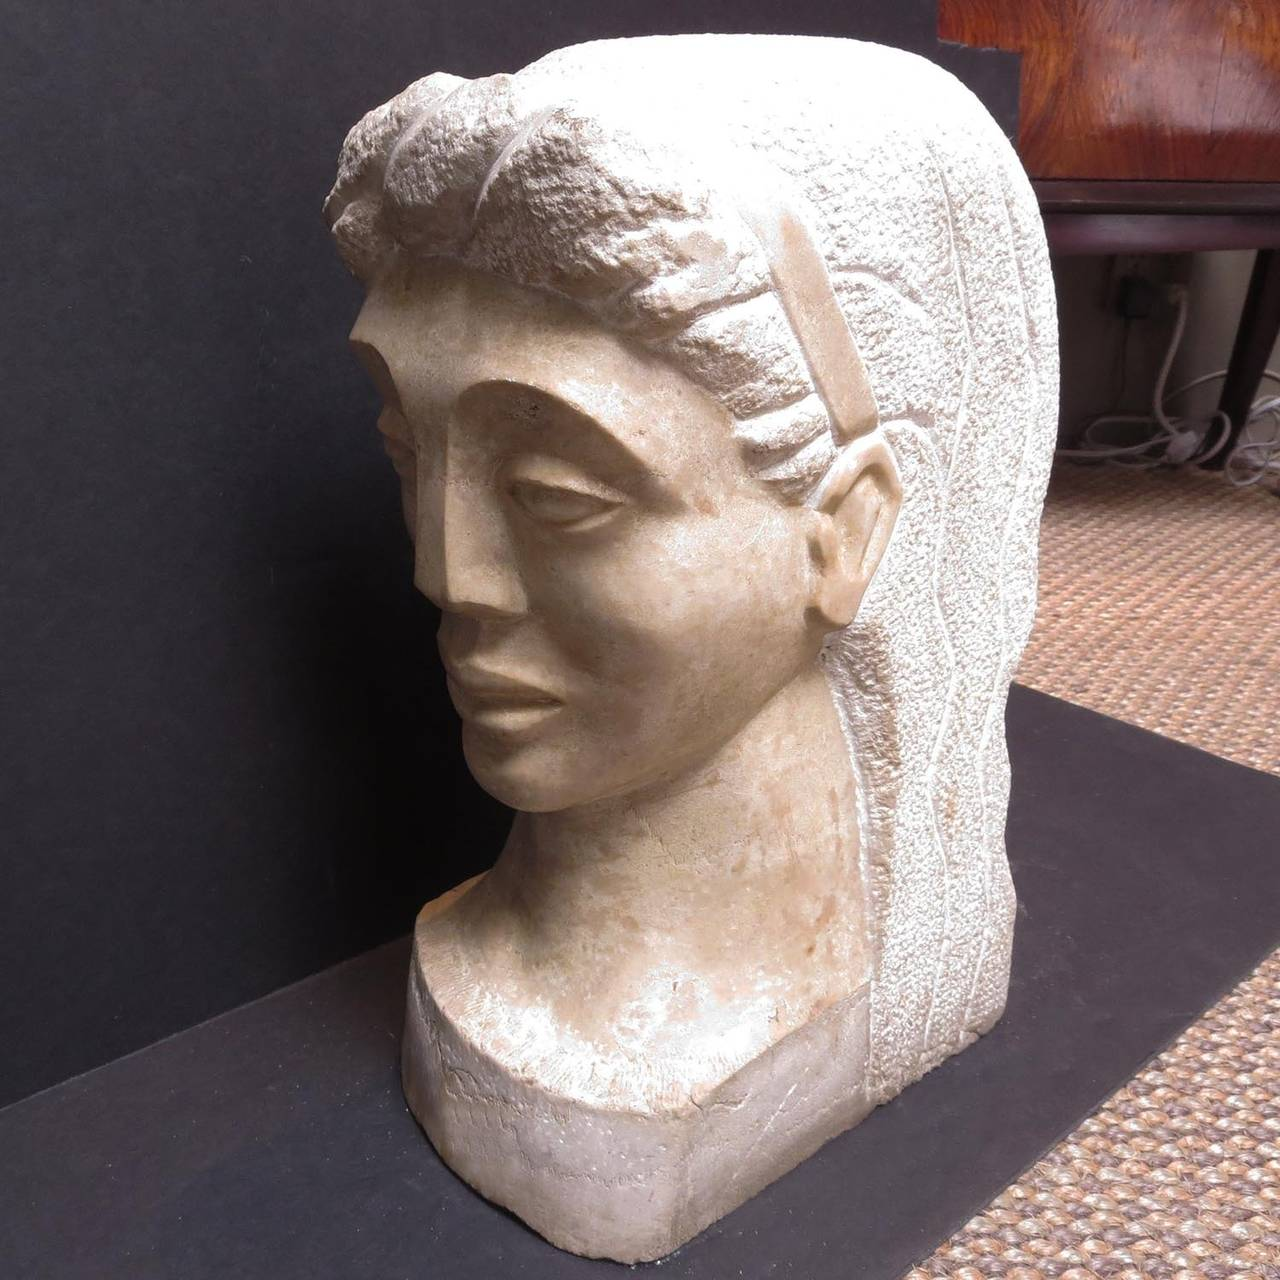 A strong and stylized bust of a woman from the 1930's, signed by an artist MT. The head is solid marble, with a smoothly polished face, and textured hair. The sculptured carving is of the highest quality, reminiscent of the Hollywood Bowl Art Deco